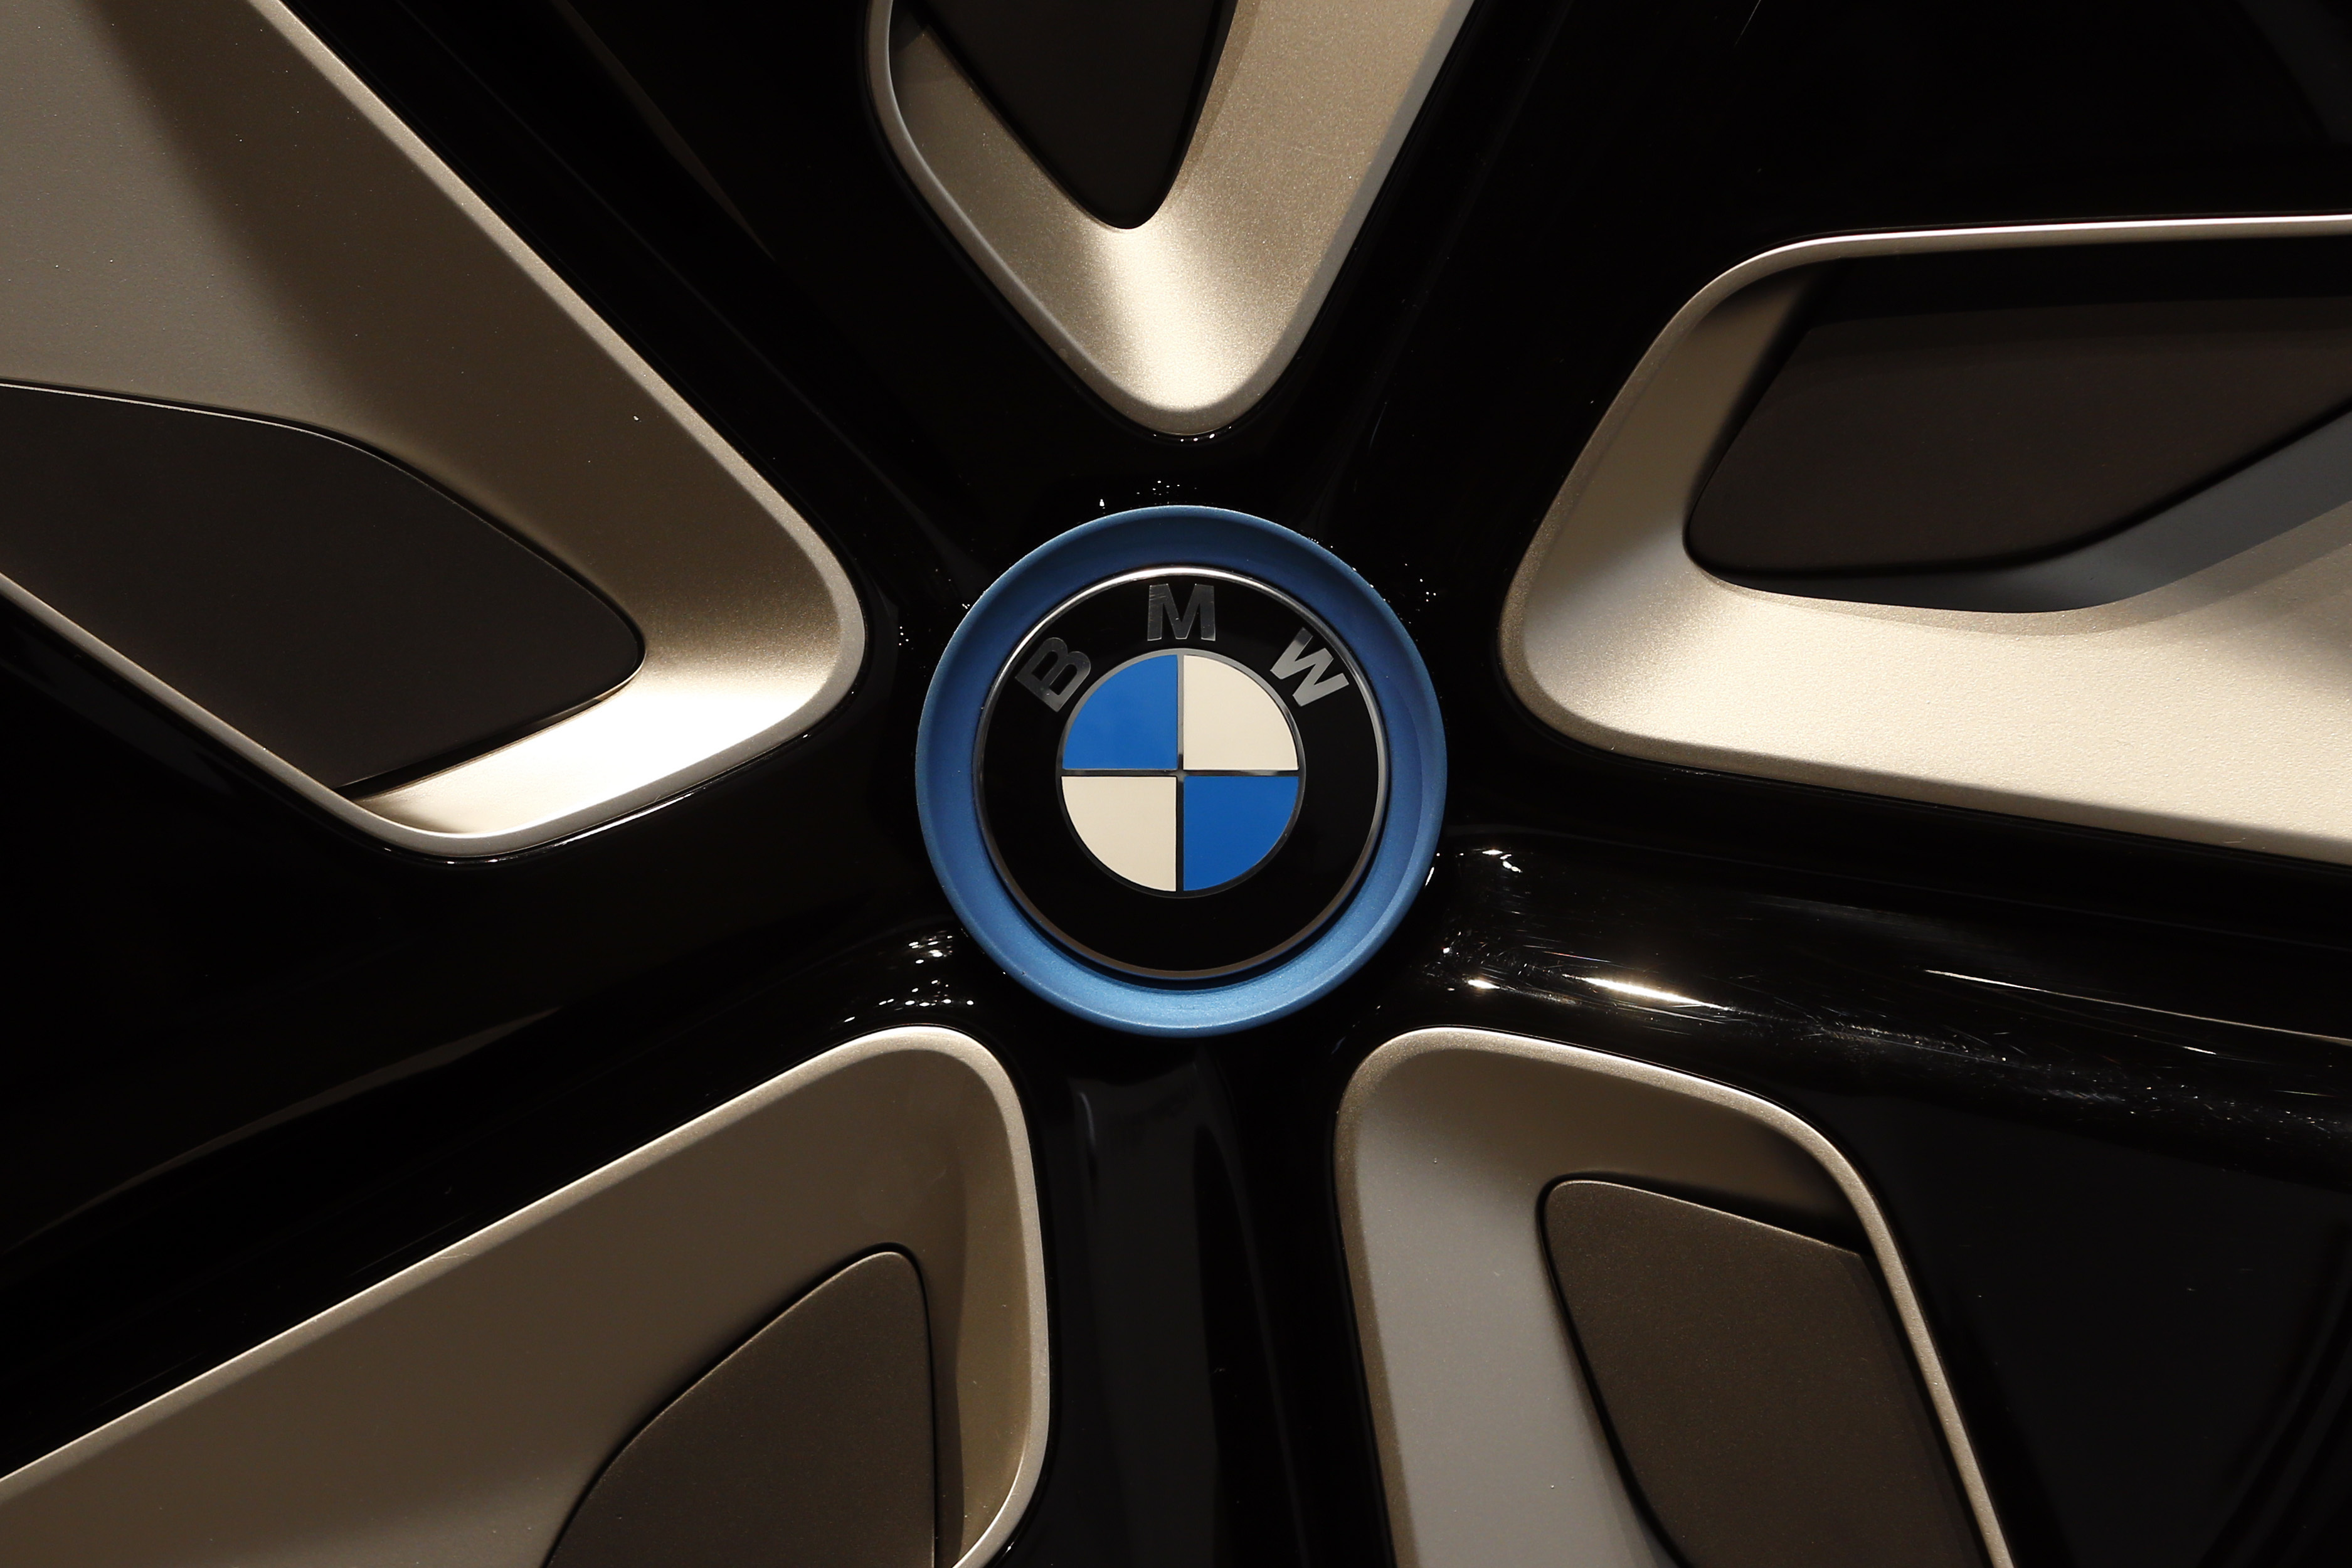 The logo of the German car manufacturer BMW is photographed at a BMWi Vision Future Interaction concept car during the full-year earnings in Munich, Germany, Wednesday, March 16, 2016. (AP Photo/Matthias Schrader)